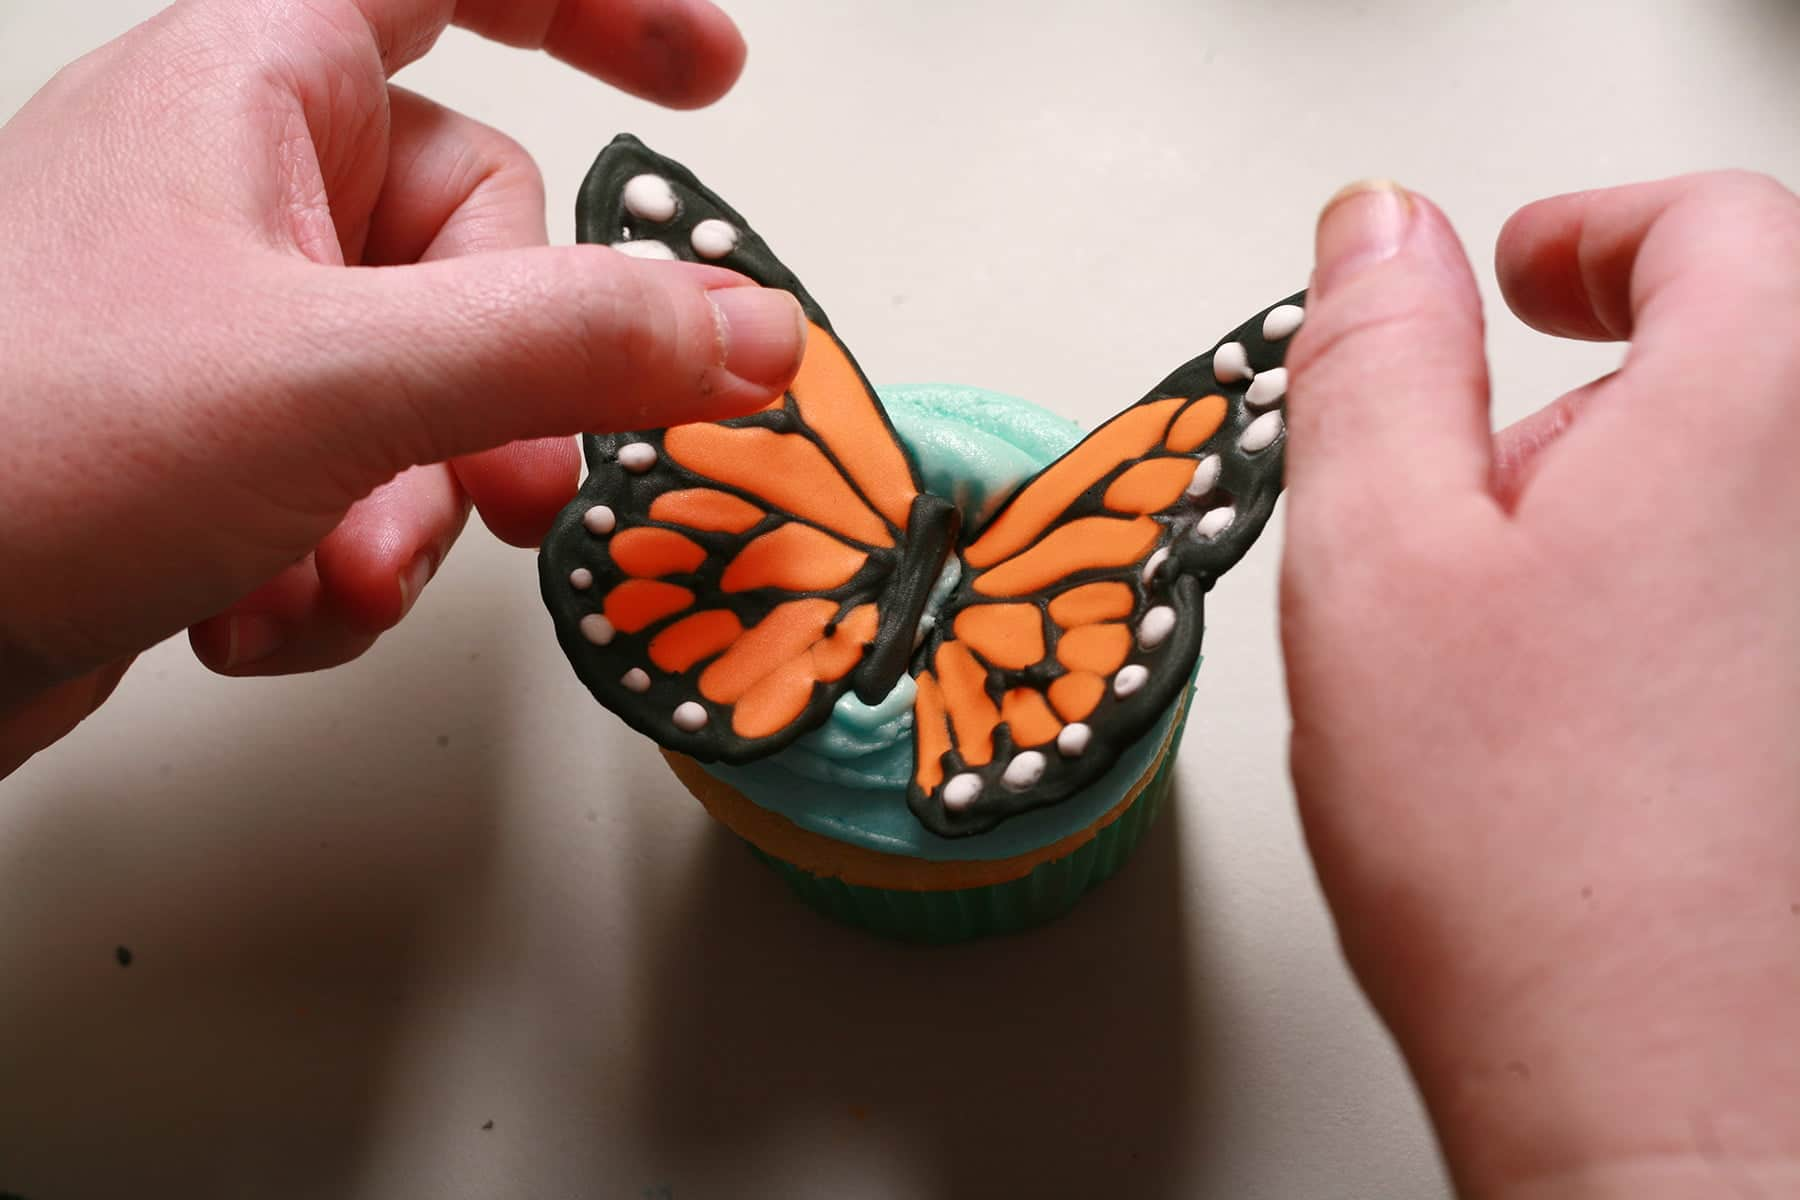 Two hands place a set of monarch butterfly wings on a cupcake iced with blue frosting.